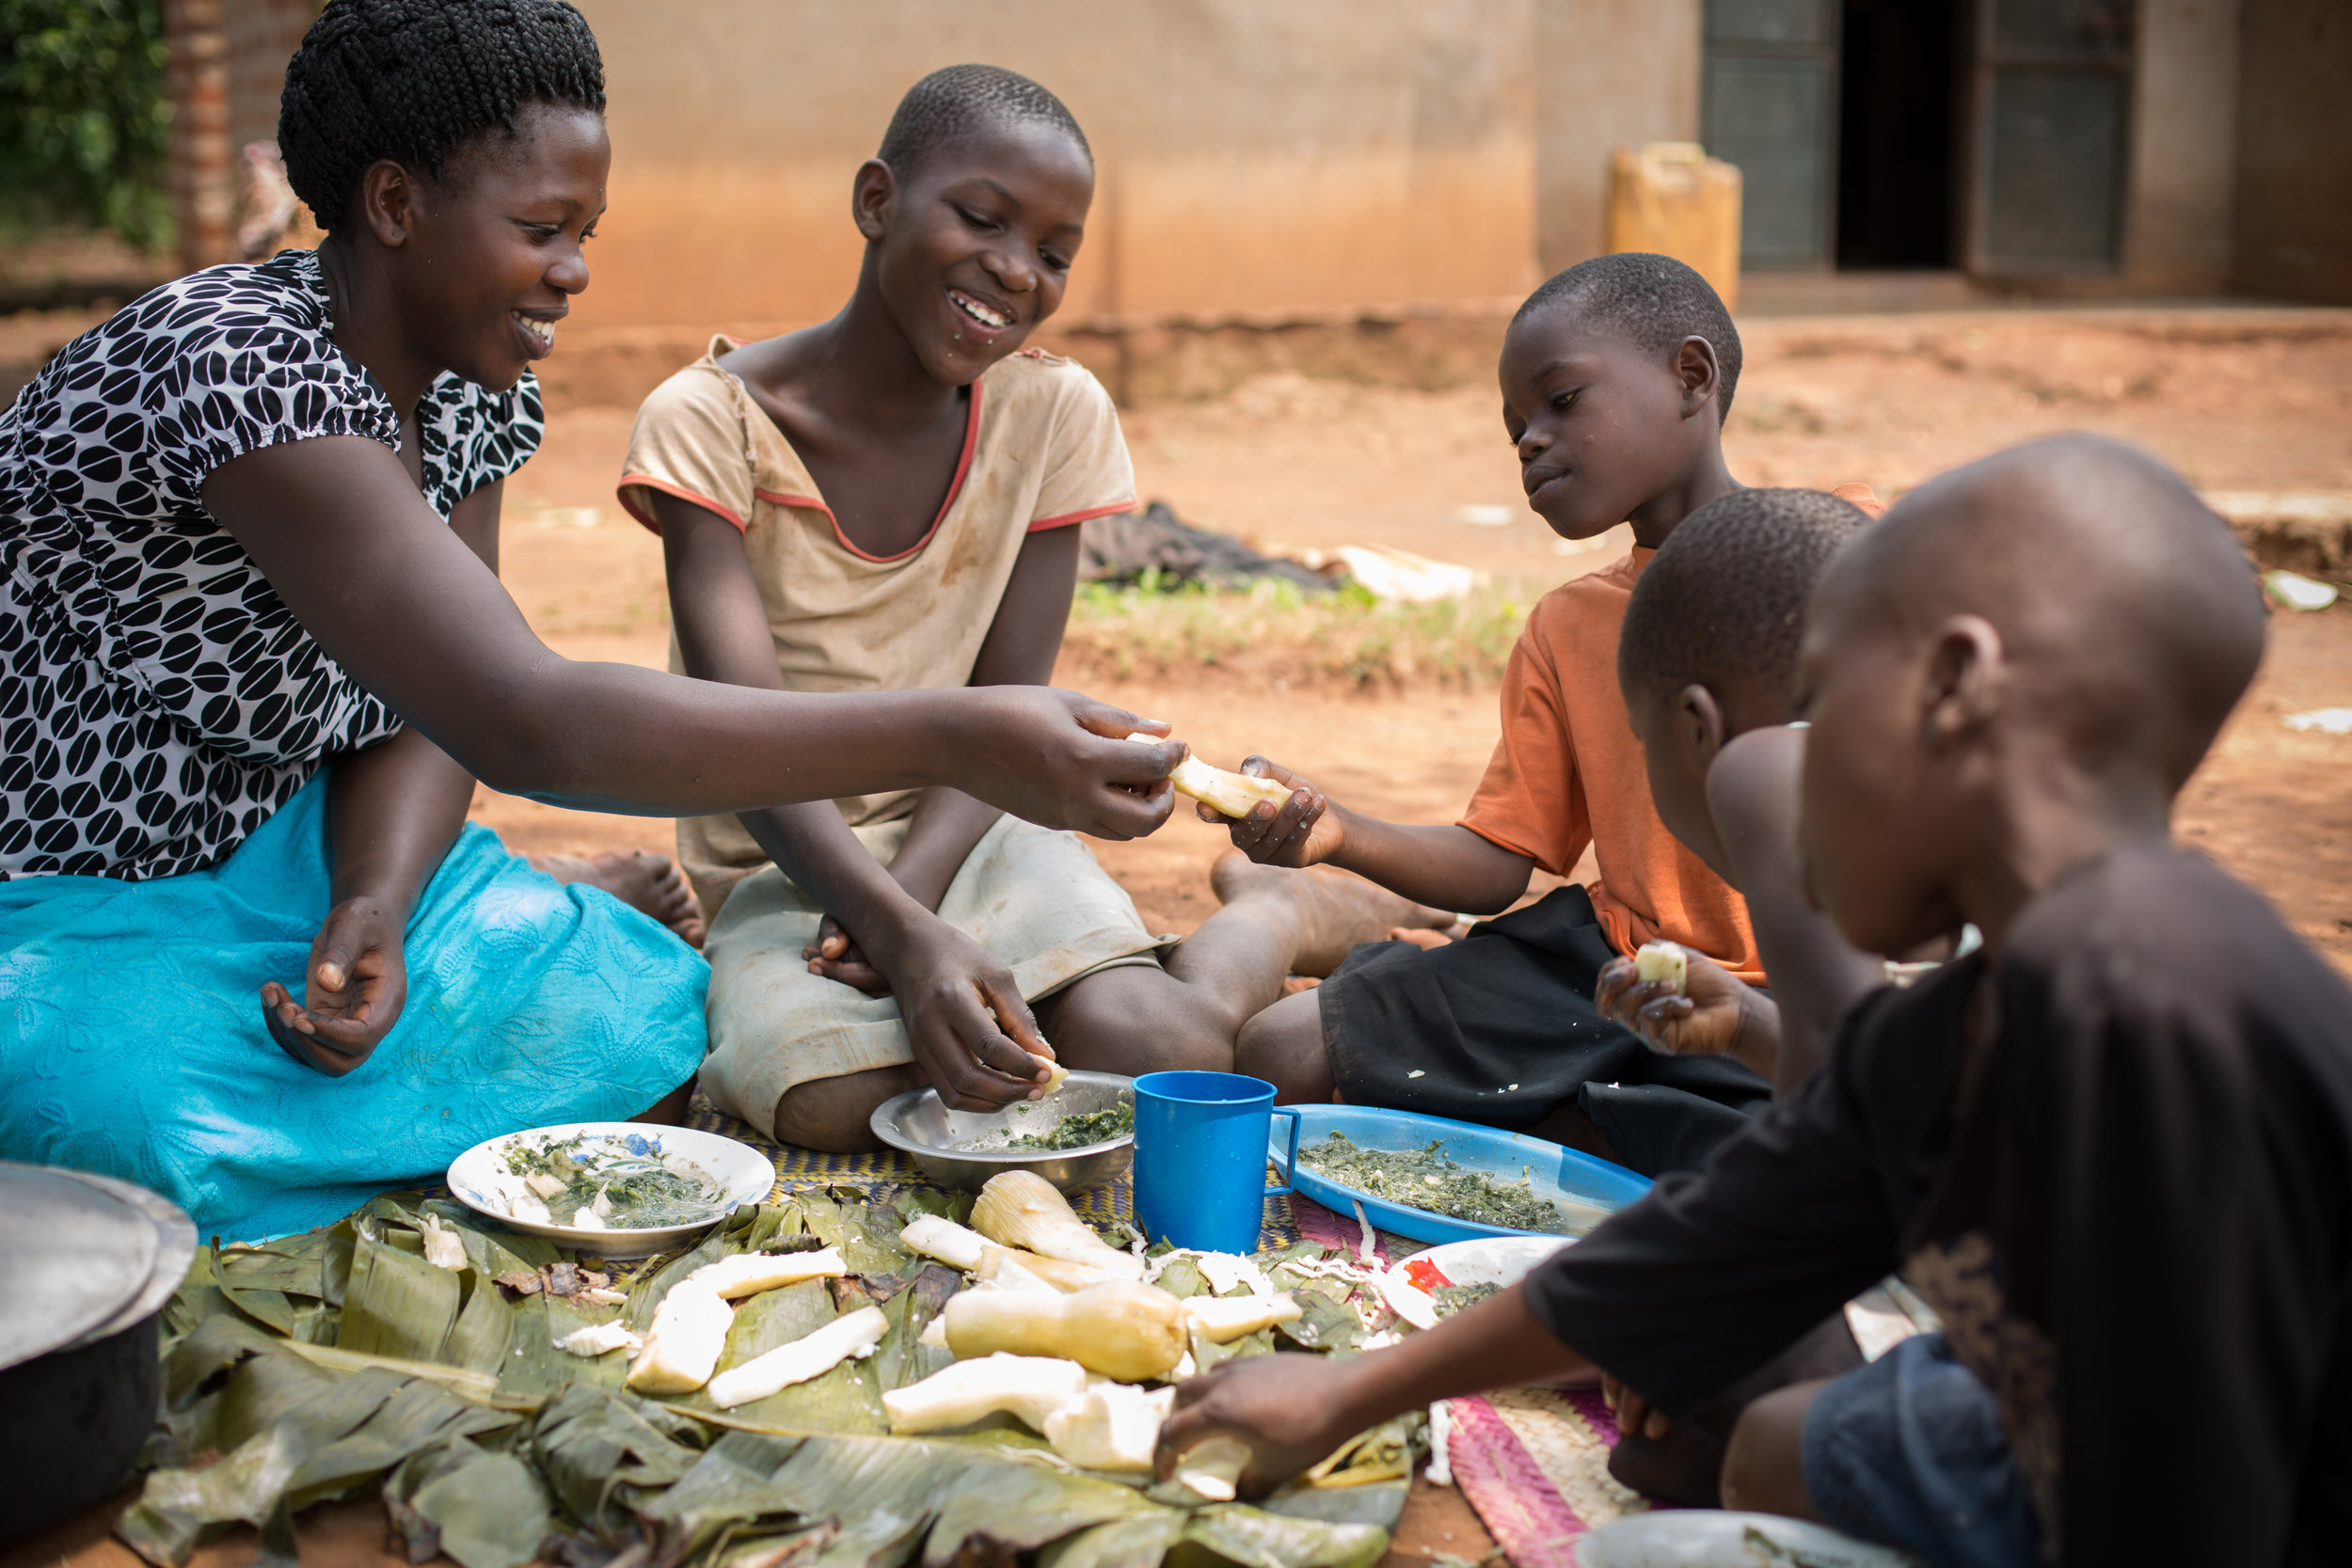 PROTECTIVE SYSTEMS CASE STUDY:  Building a system of care for children in Uganda   (Print Version)